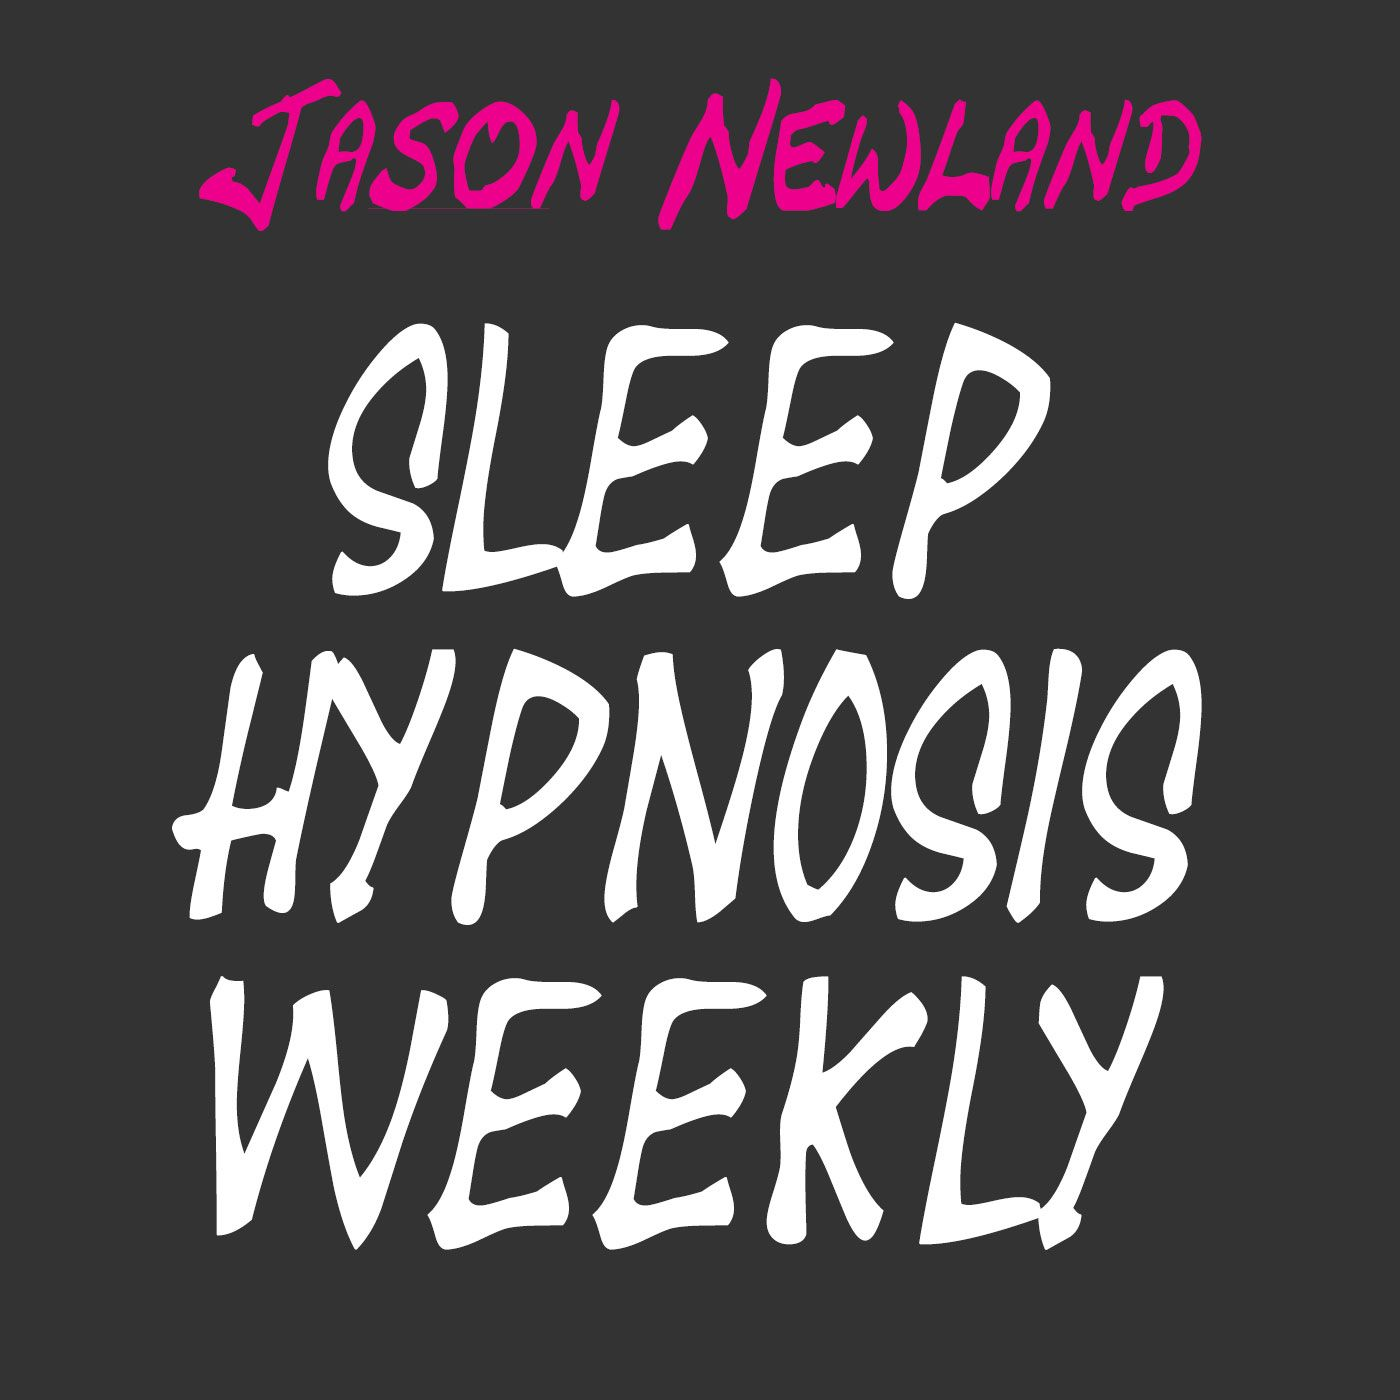 "Sleep Hypnosis Weekly #63 ""TURNING OFF THE STRESS MAGNET"" (Jason Newland) (12th January 2021) with MUSIC"